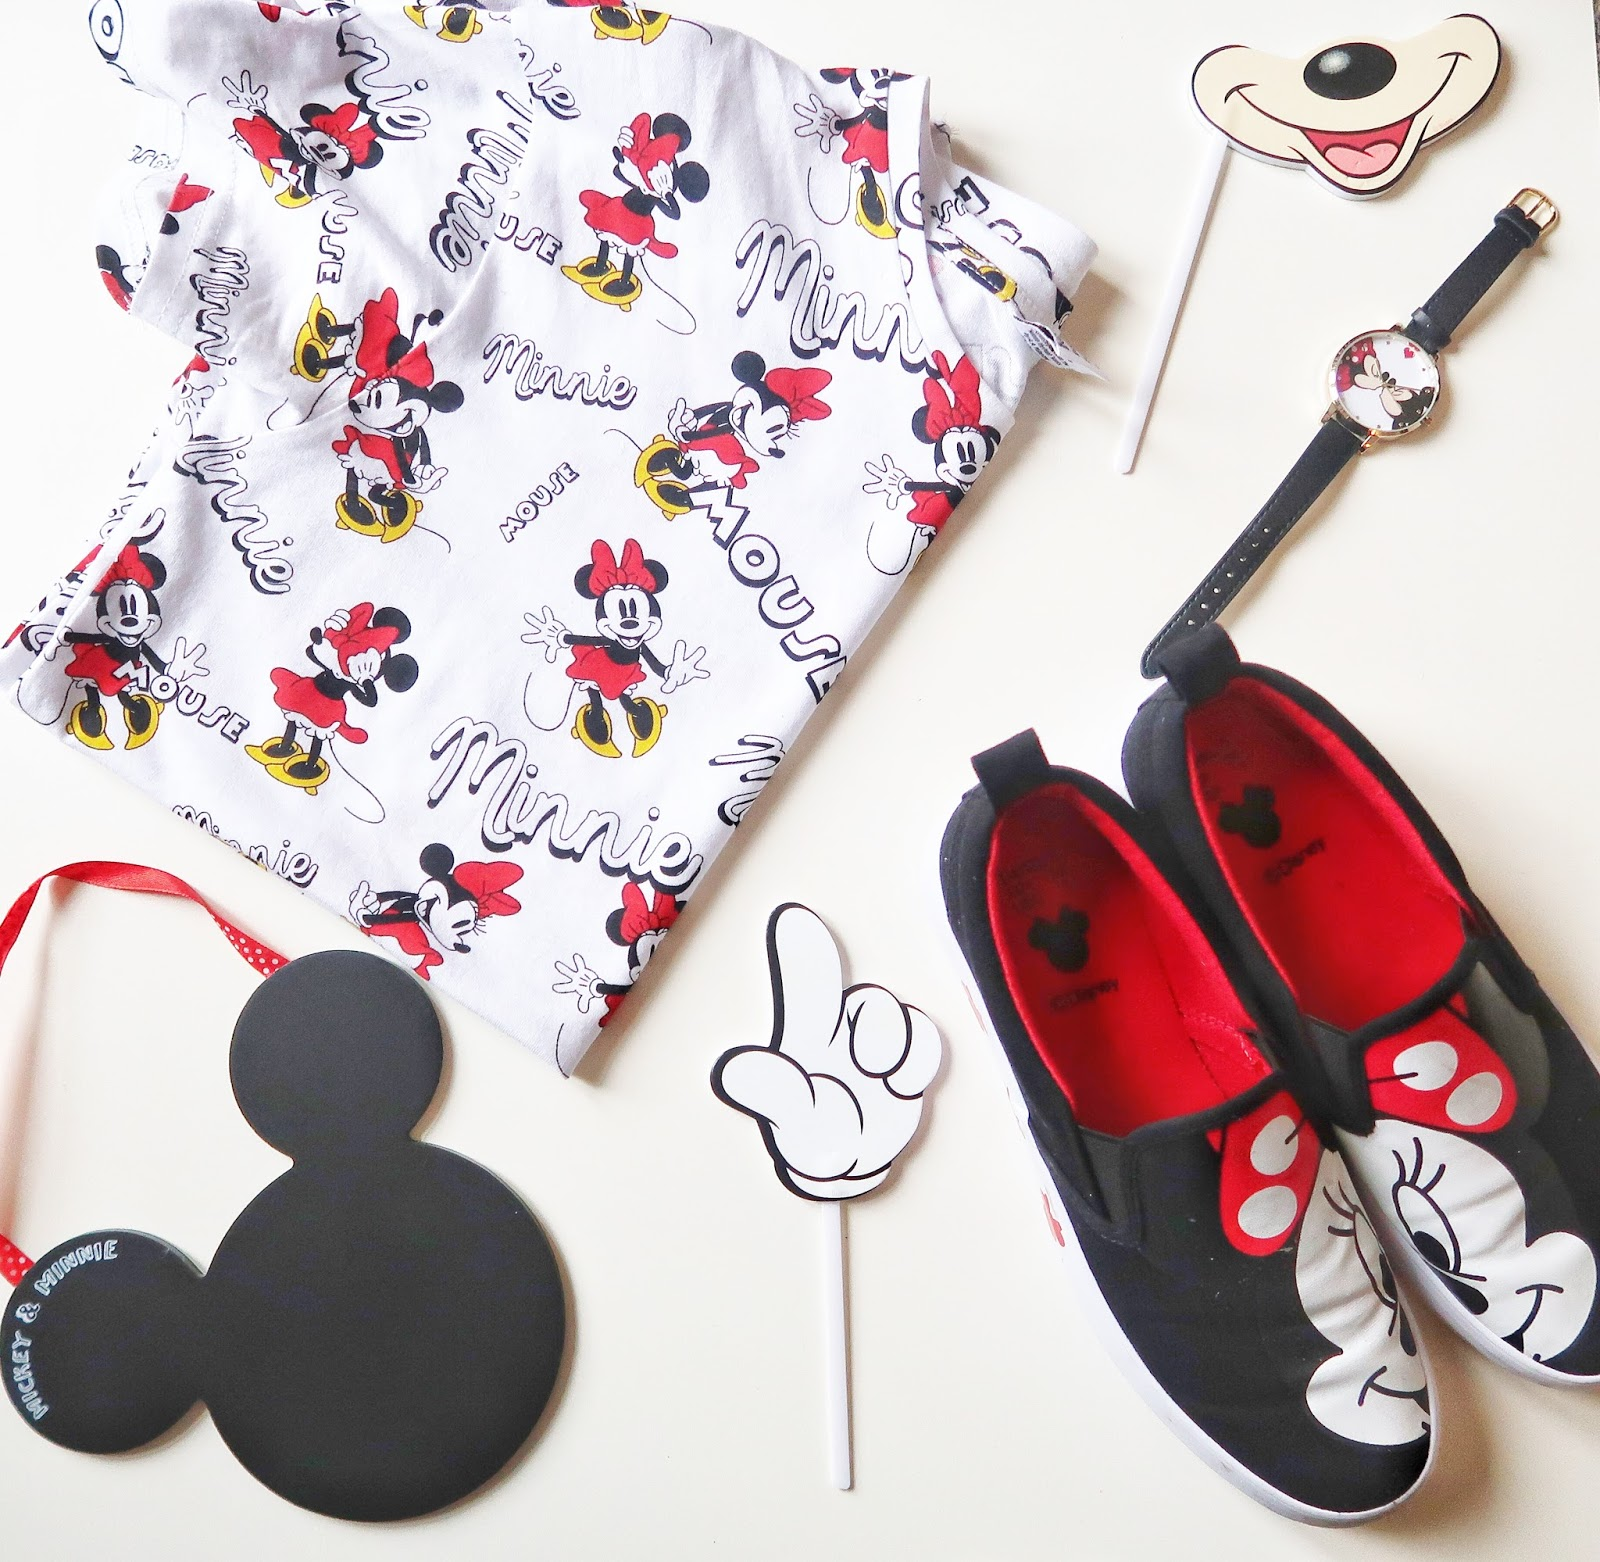 The Best Places To Buy Disney Clothes For Adults Kerry Louise Norris